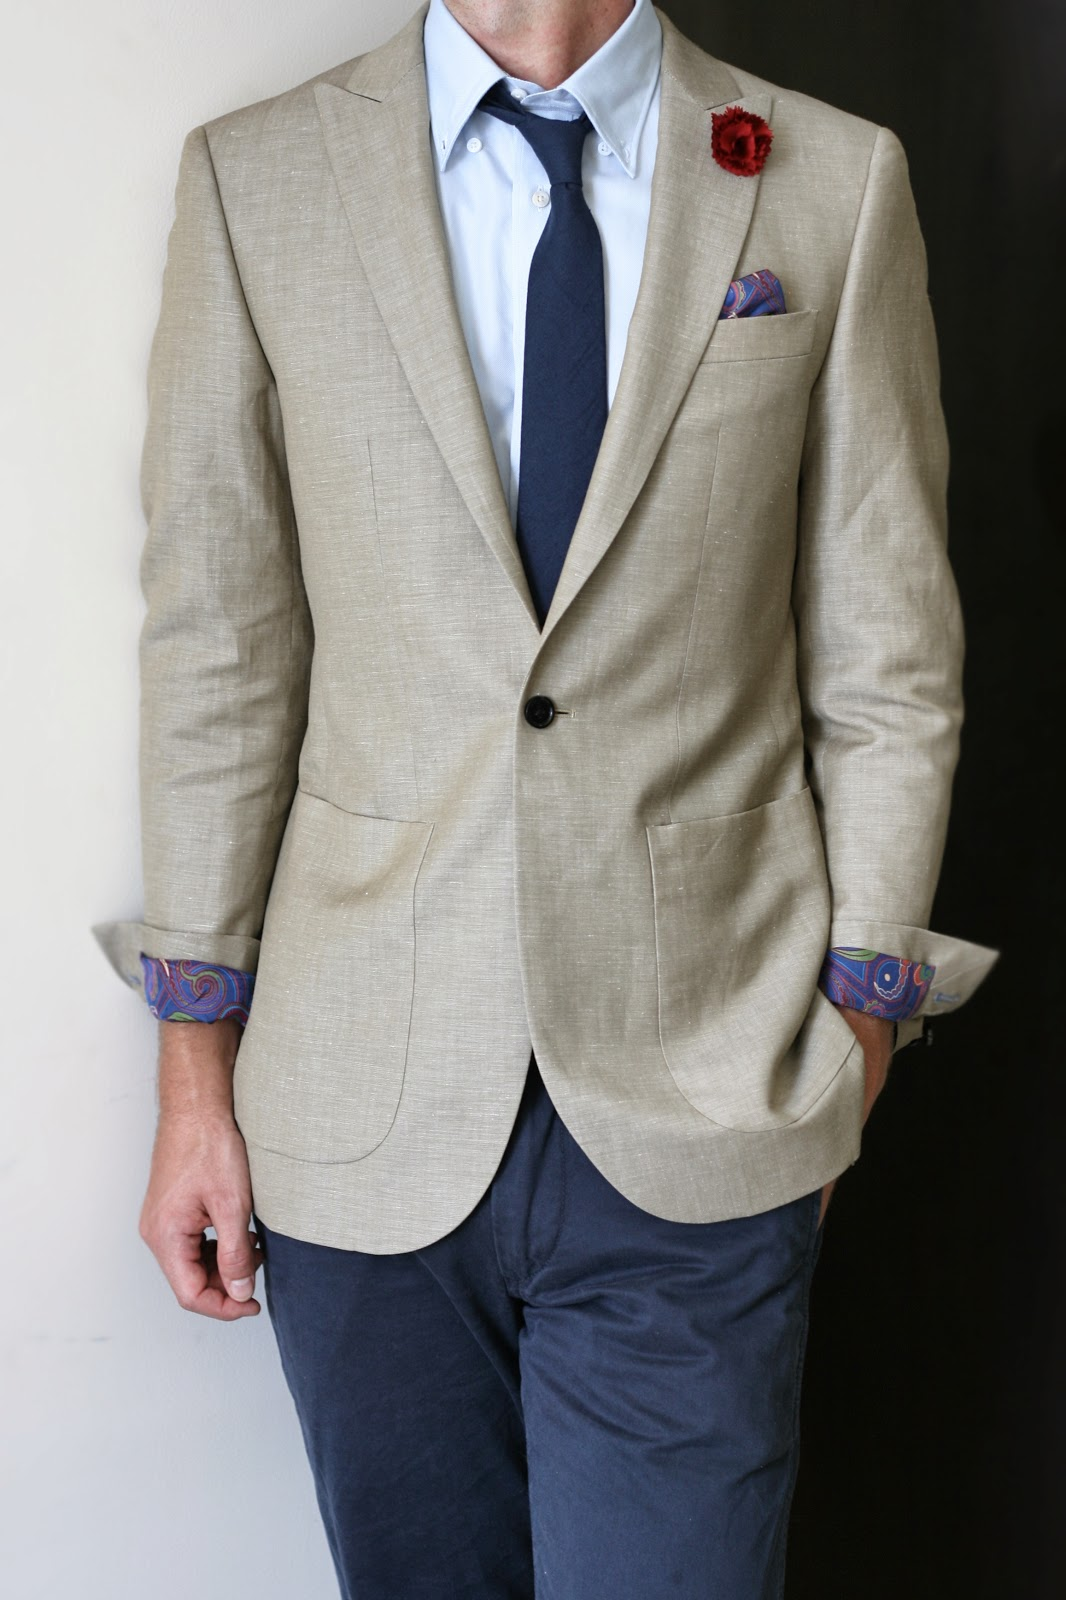 Indochino Review: An Indochino Summer Outfit